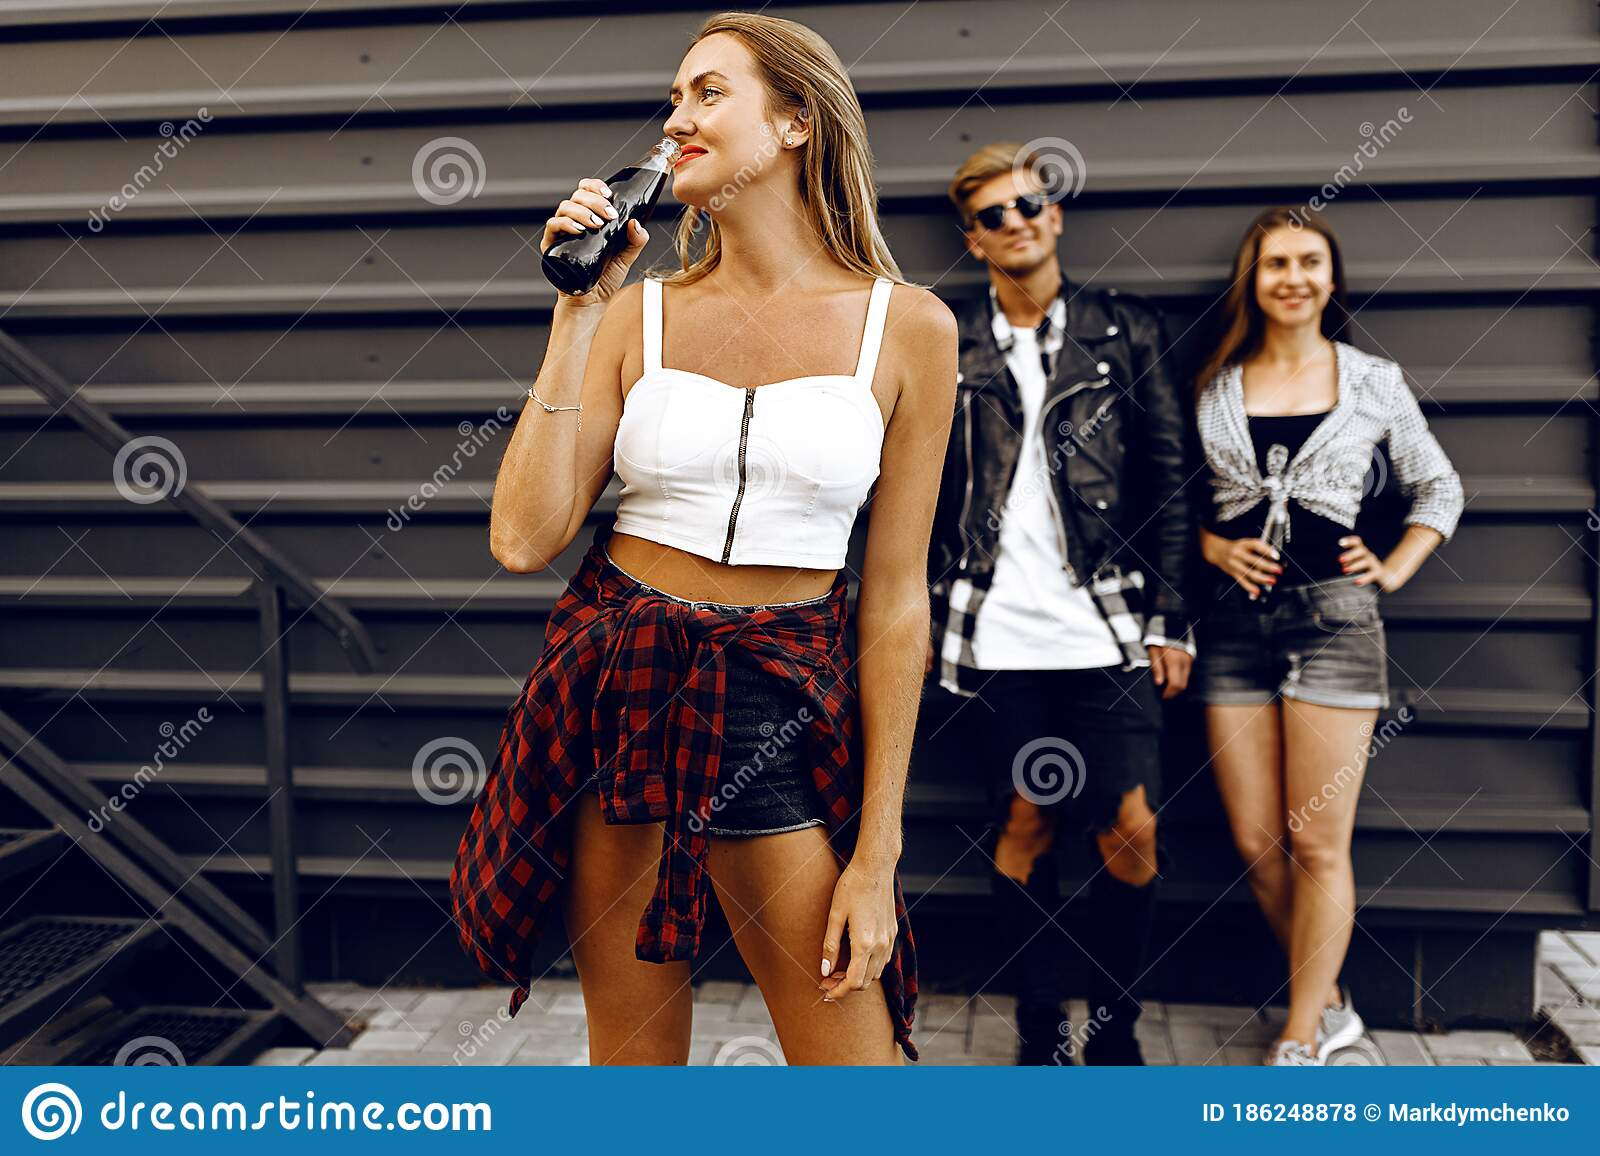 Girl With A Glass Bottle Of Drink Against The Backdrop Of Her Friends A Summer Party In The City Stock Photo Image Of Happiness Friendship 186248878